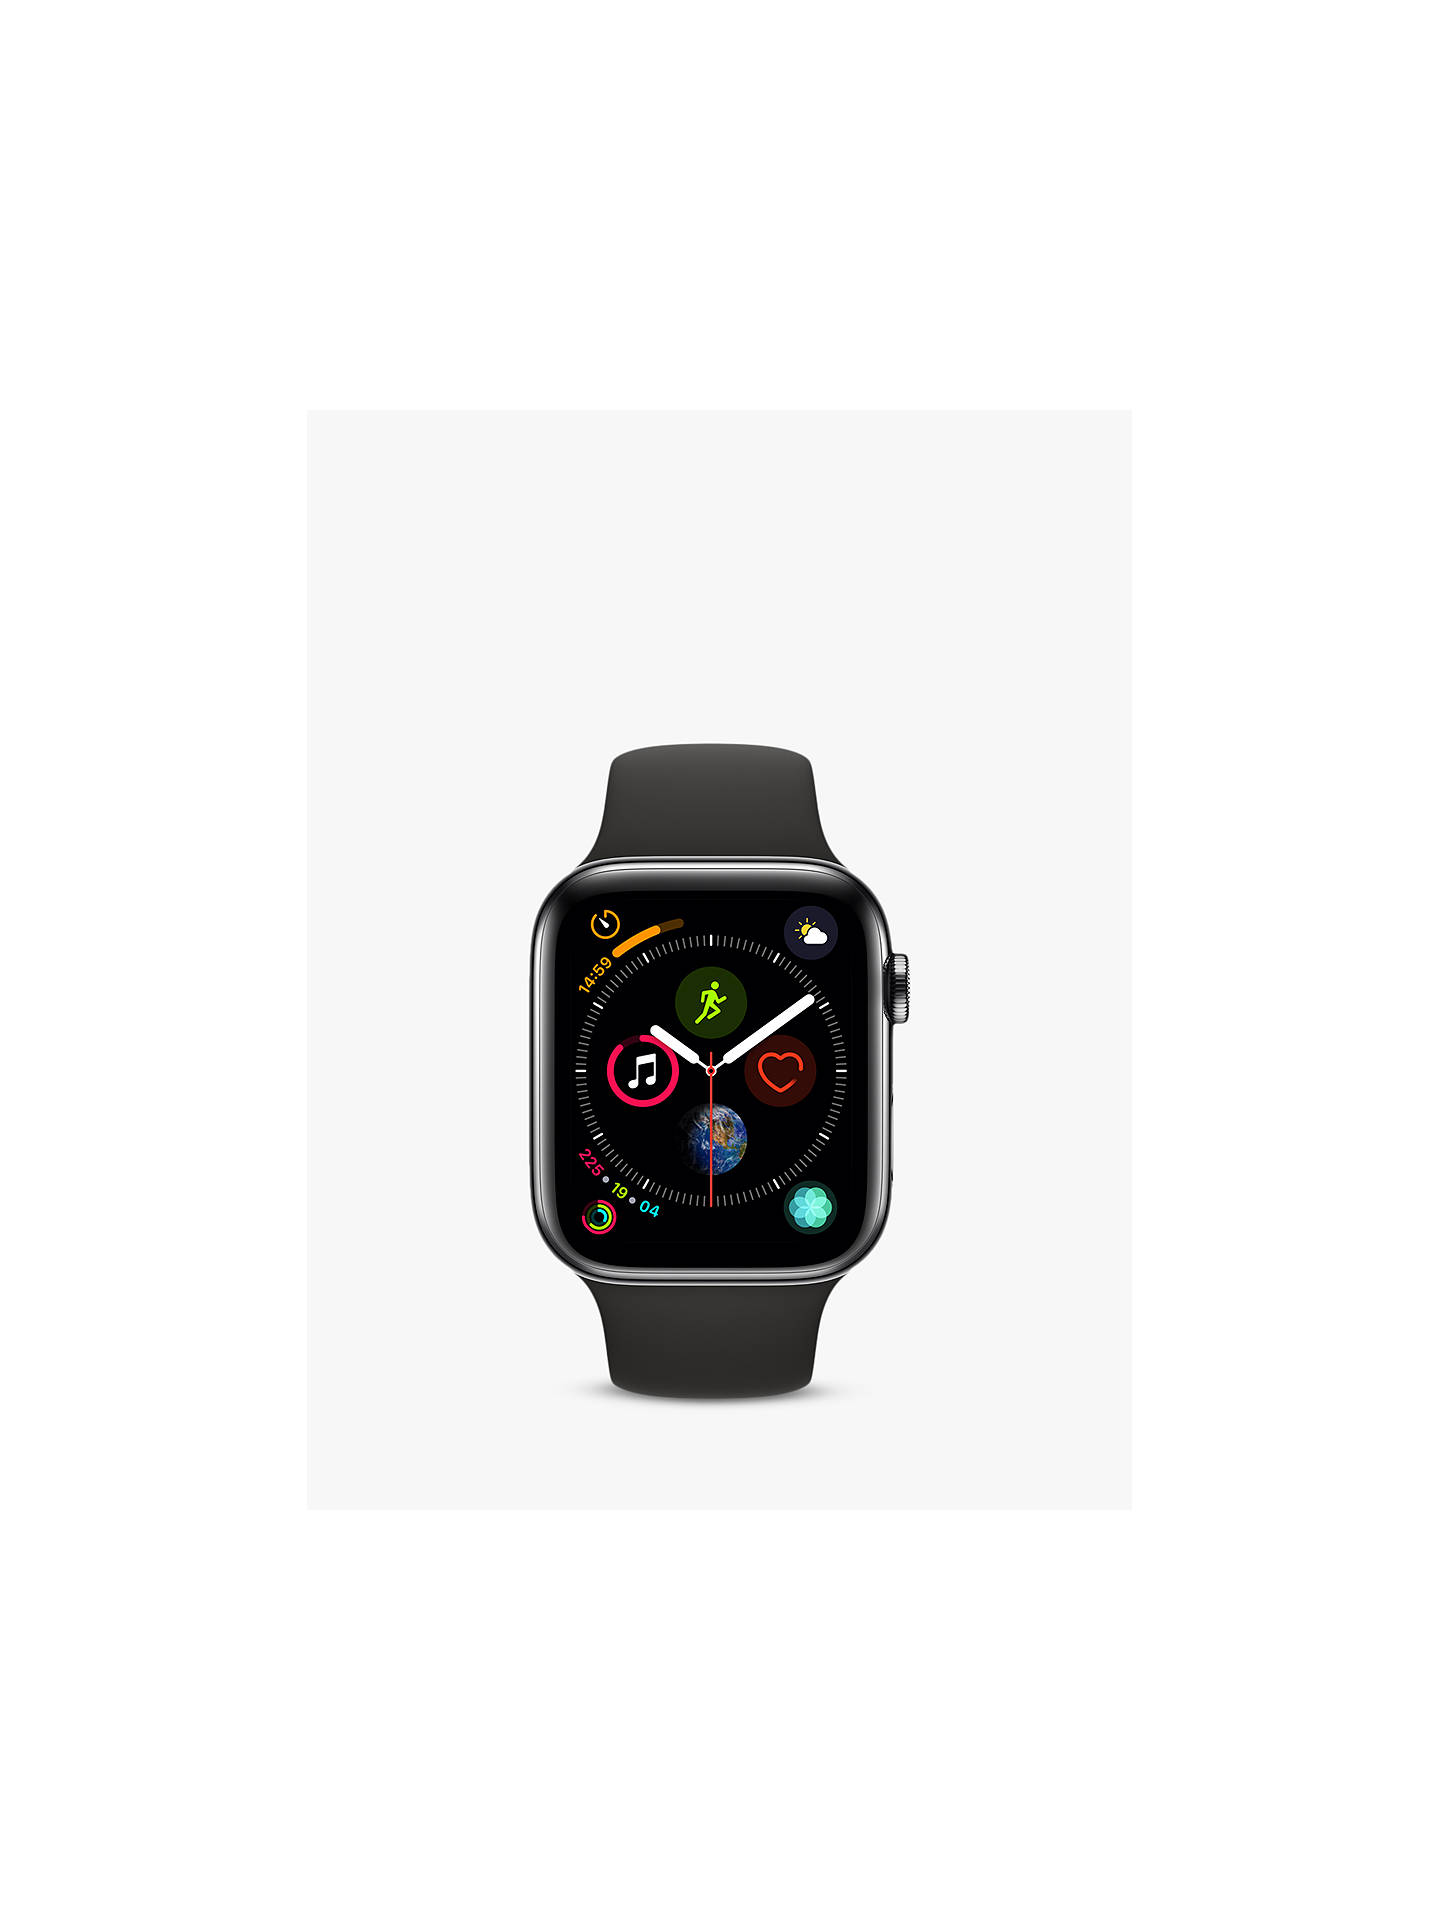 BuyApple Watch Series 4, GPS and Cellular, 44mm Space Grey Stainless Steel Case with Sport Band, Black Online at johnlewis.com